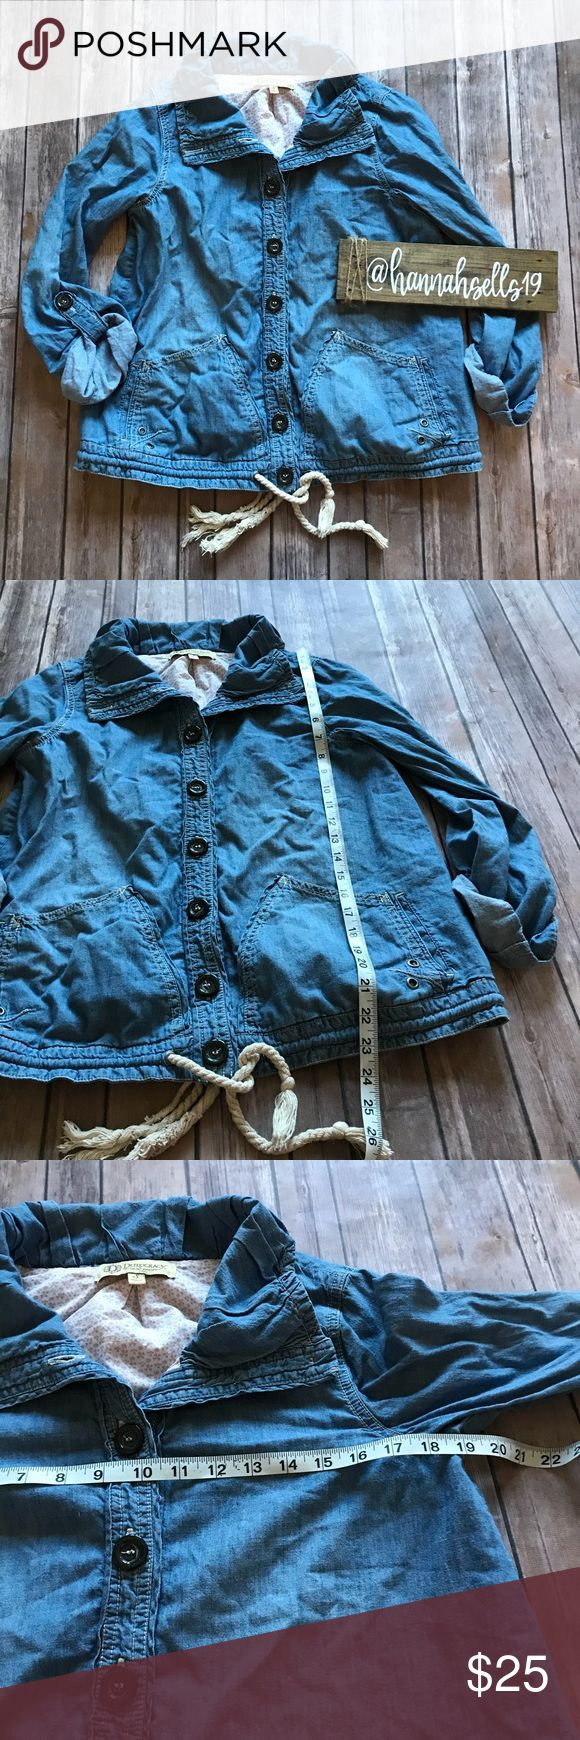 Democracy Chambray Jacket Size Small Like new cute Button Down lightweight jacket from Democracy. This would be perfect for Fall or Spring and can be Layered with any outfit! Democracy Jackets & Coats